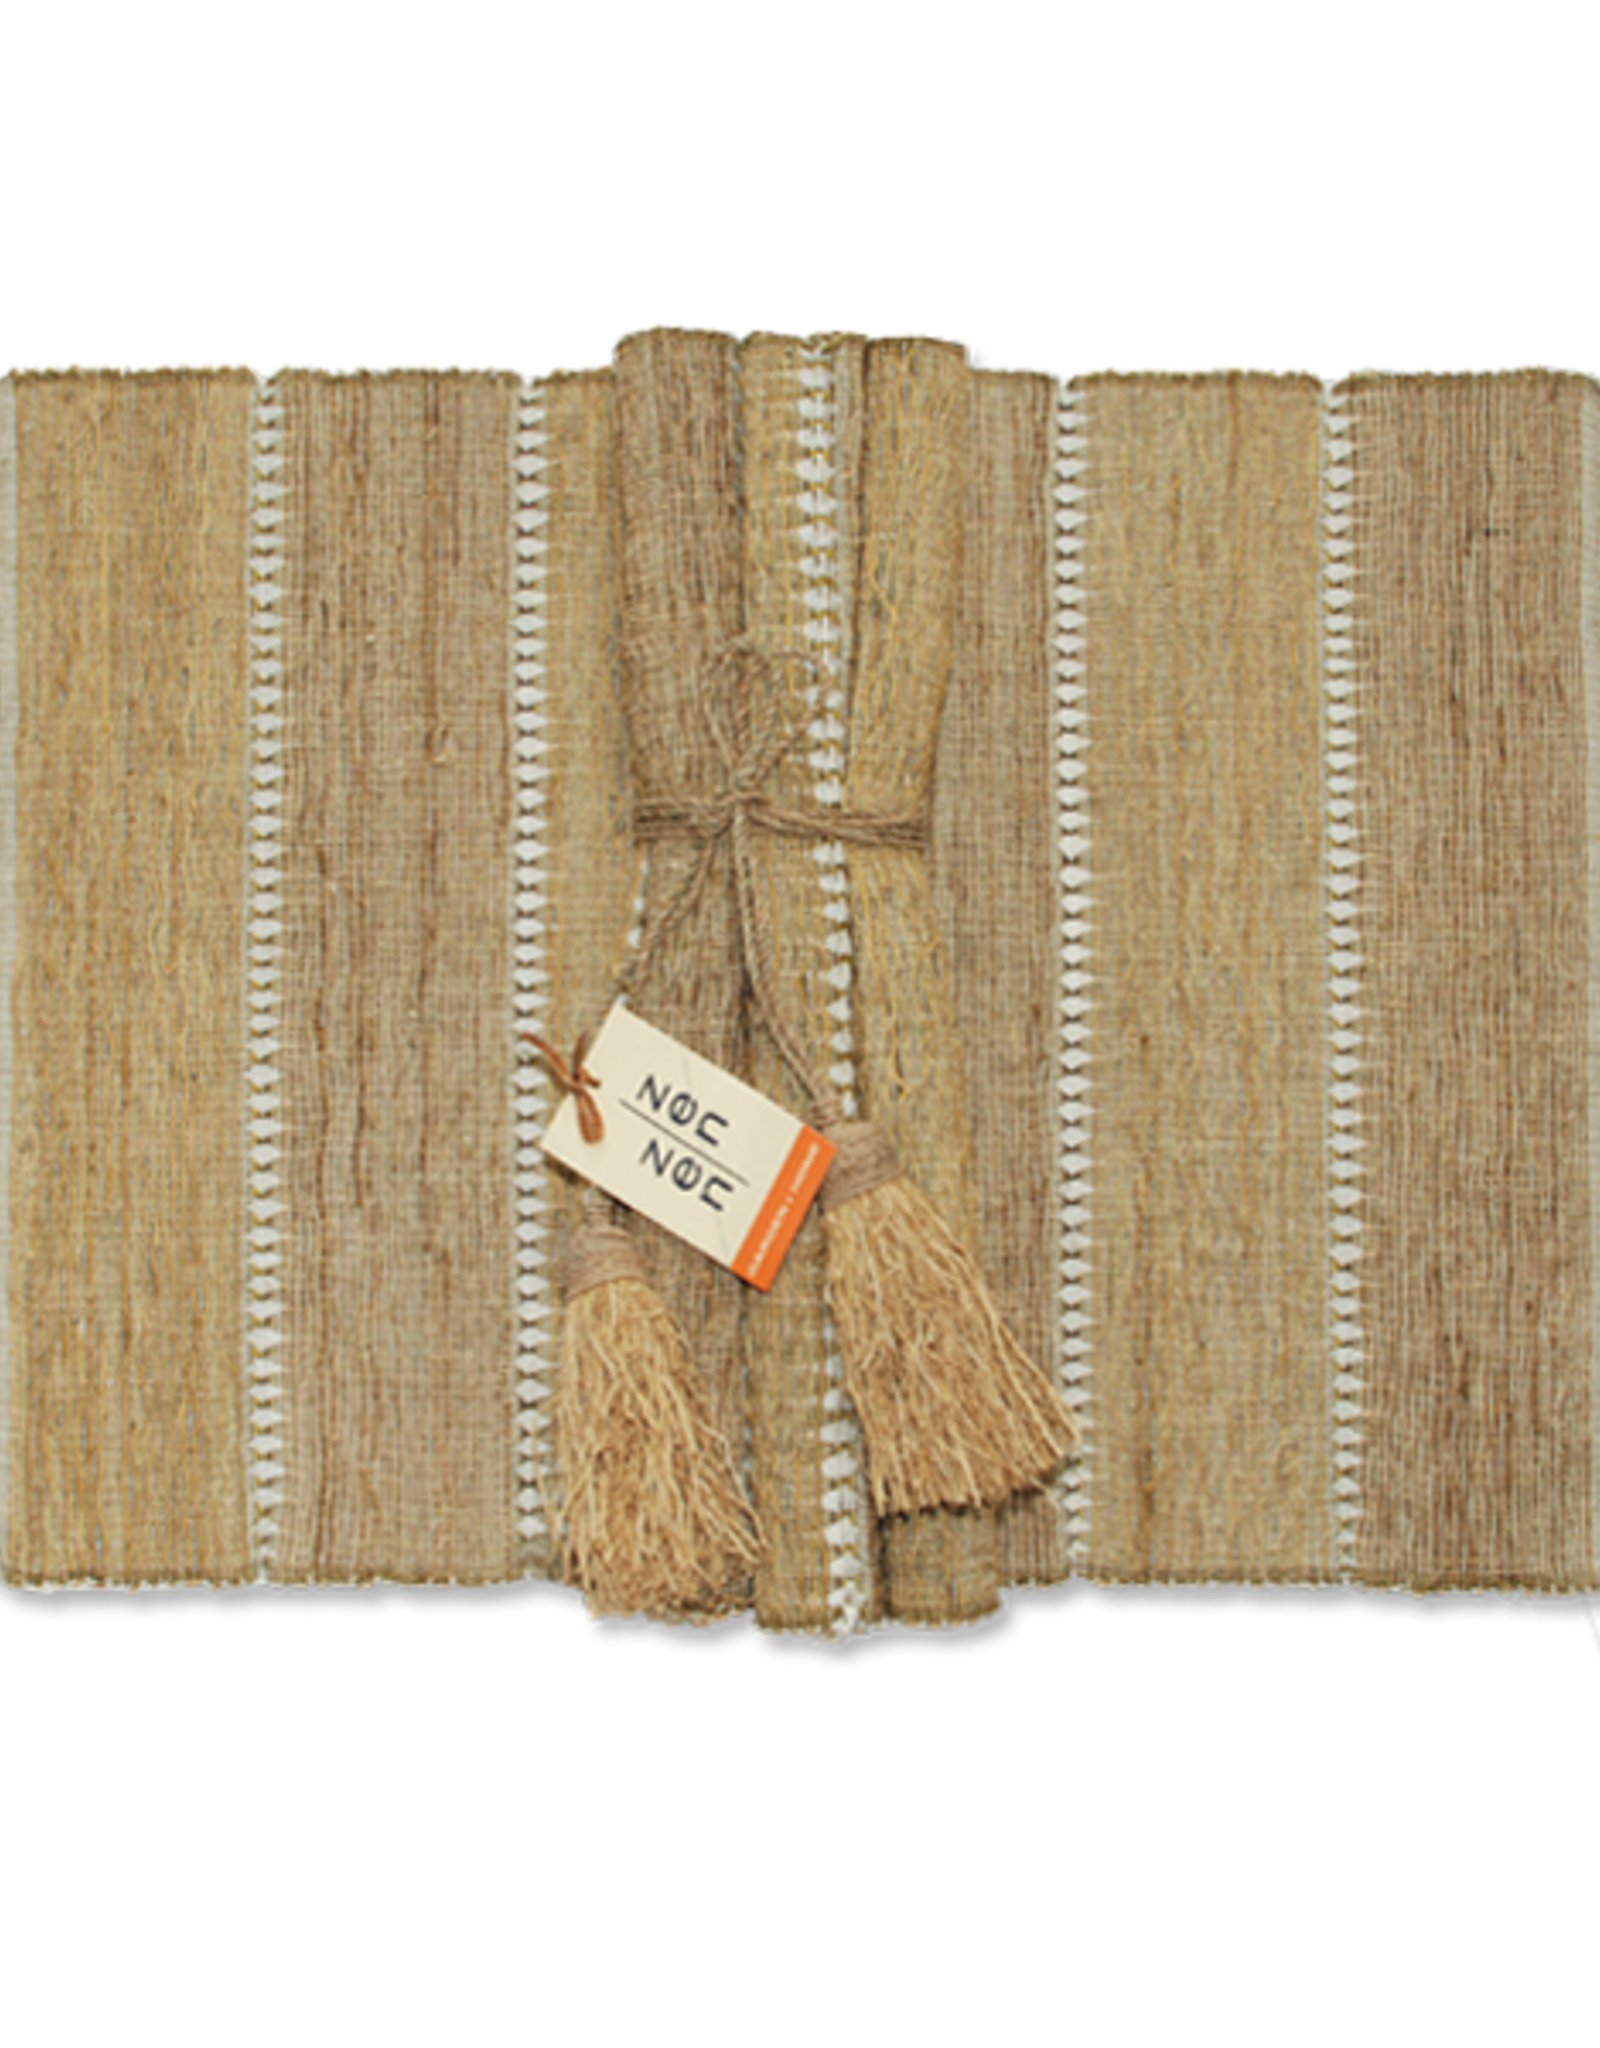 Vetiver Placemat Set of 6 - Beige Stripe